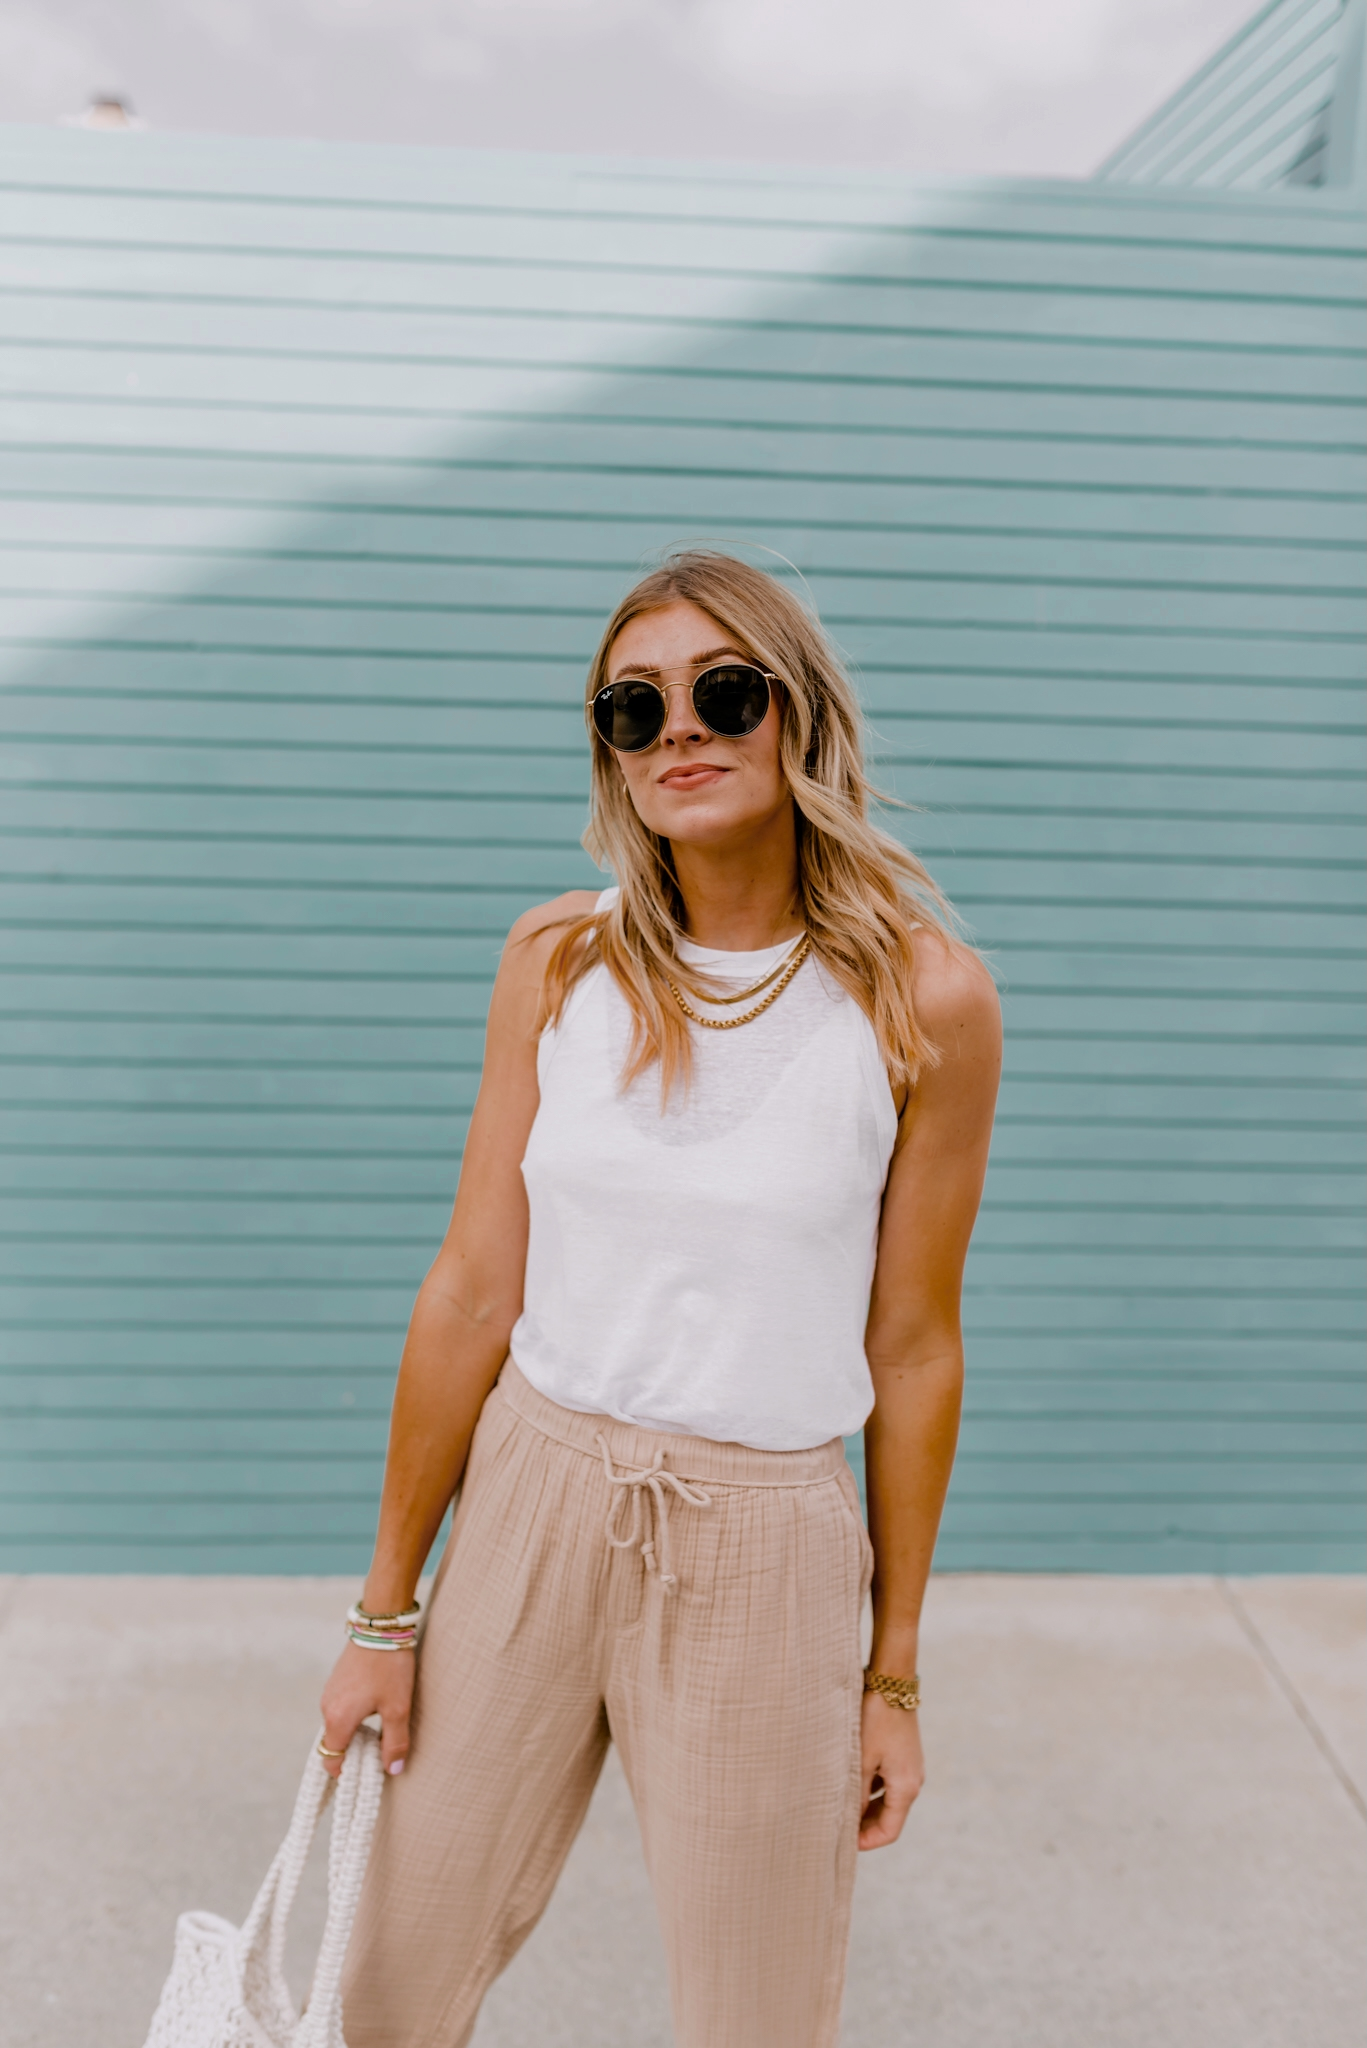 woman wearing white top and pants from Amazon home and fashion favorites